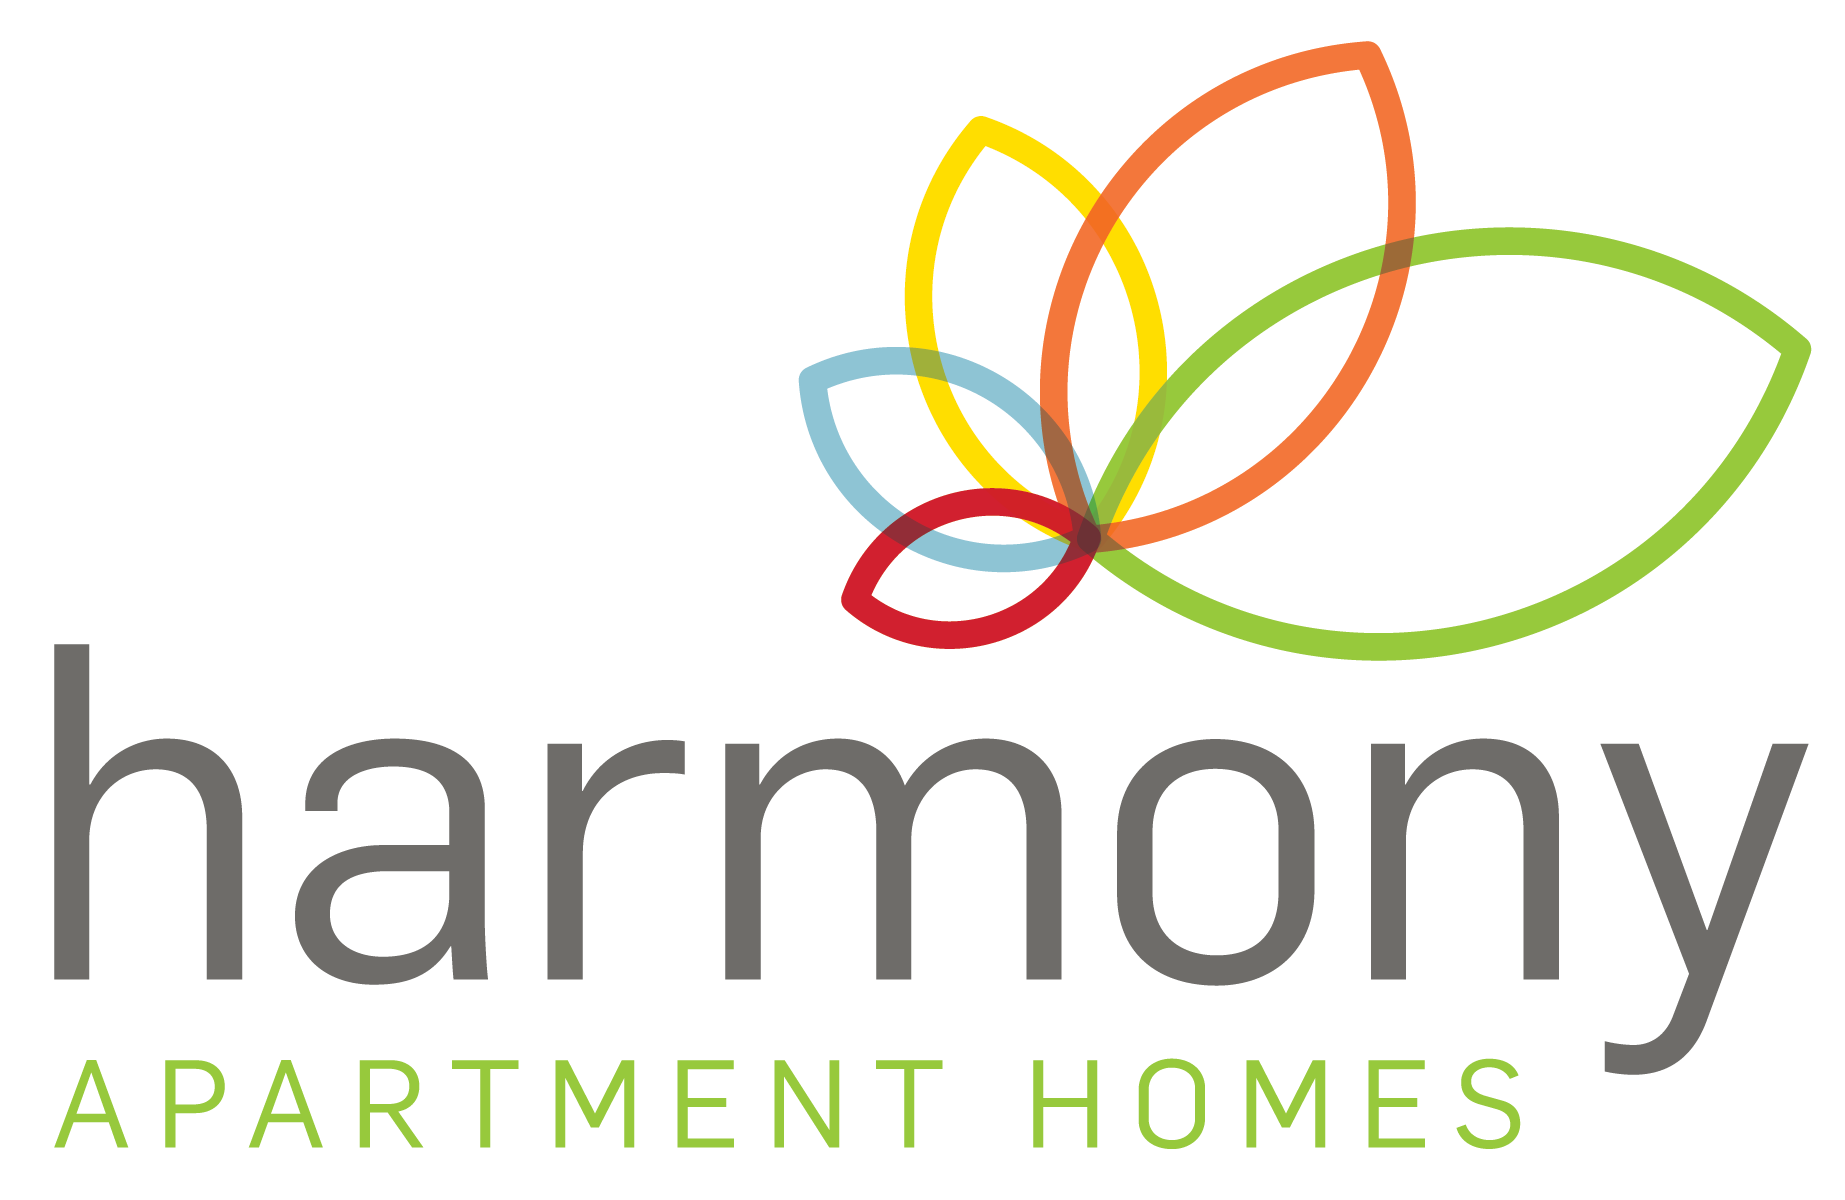 HarmonyApartments_Logo_Standard_Color-01.png